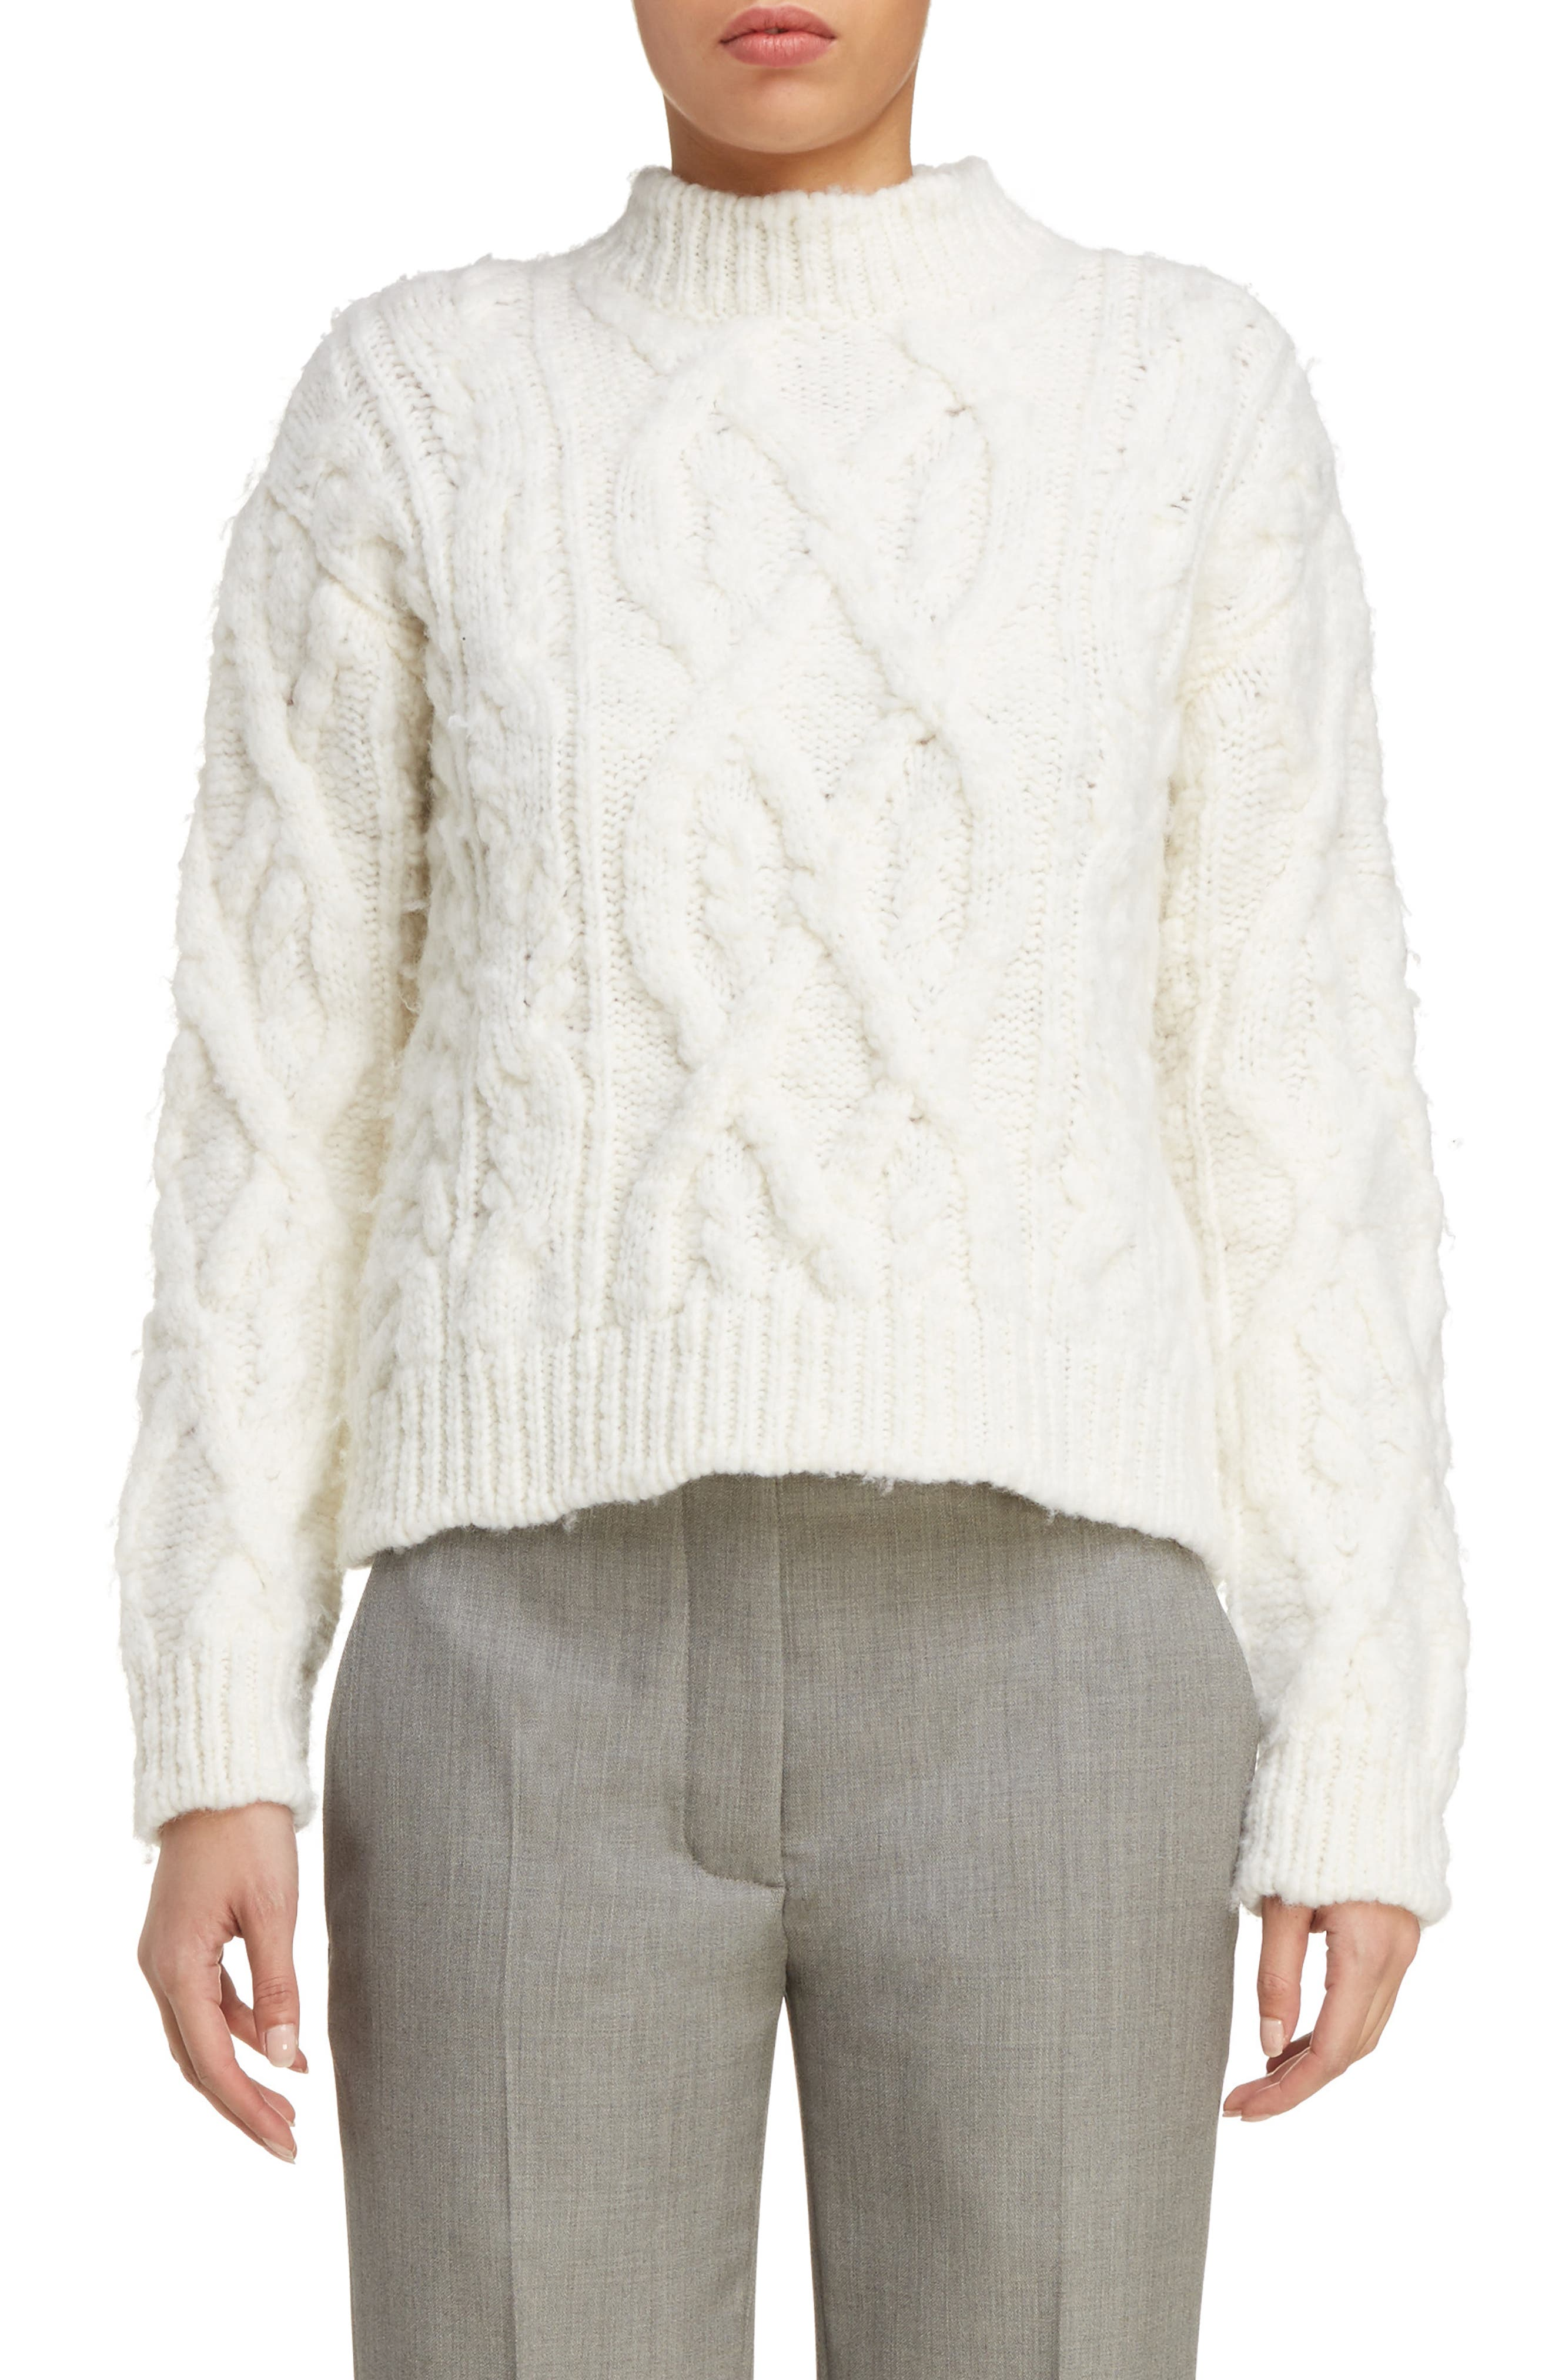 ACNE Studios Edyta Cable Knit Sweater